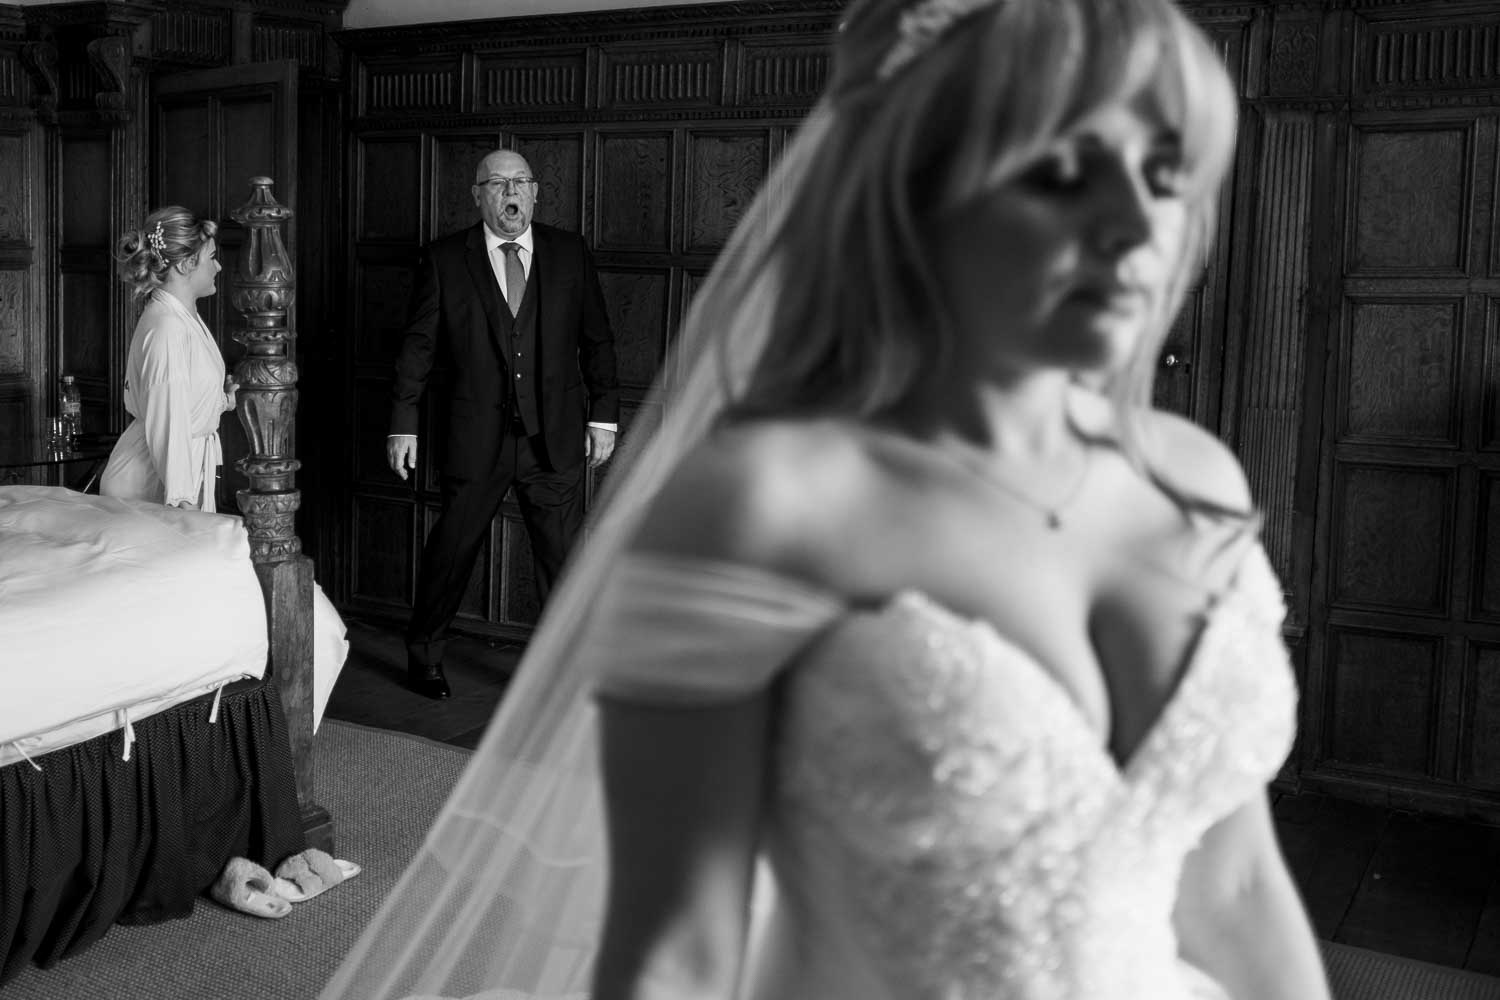 brides dad seeing her in the dress